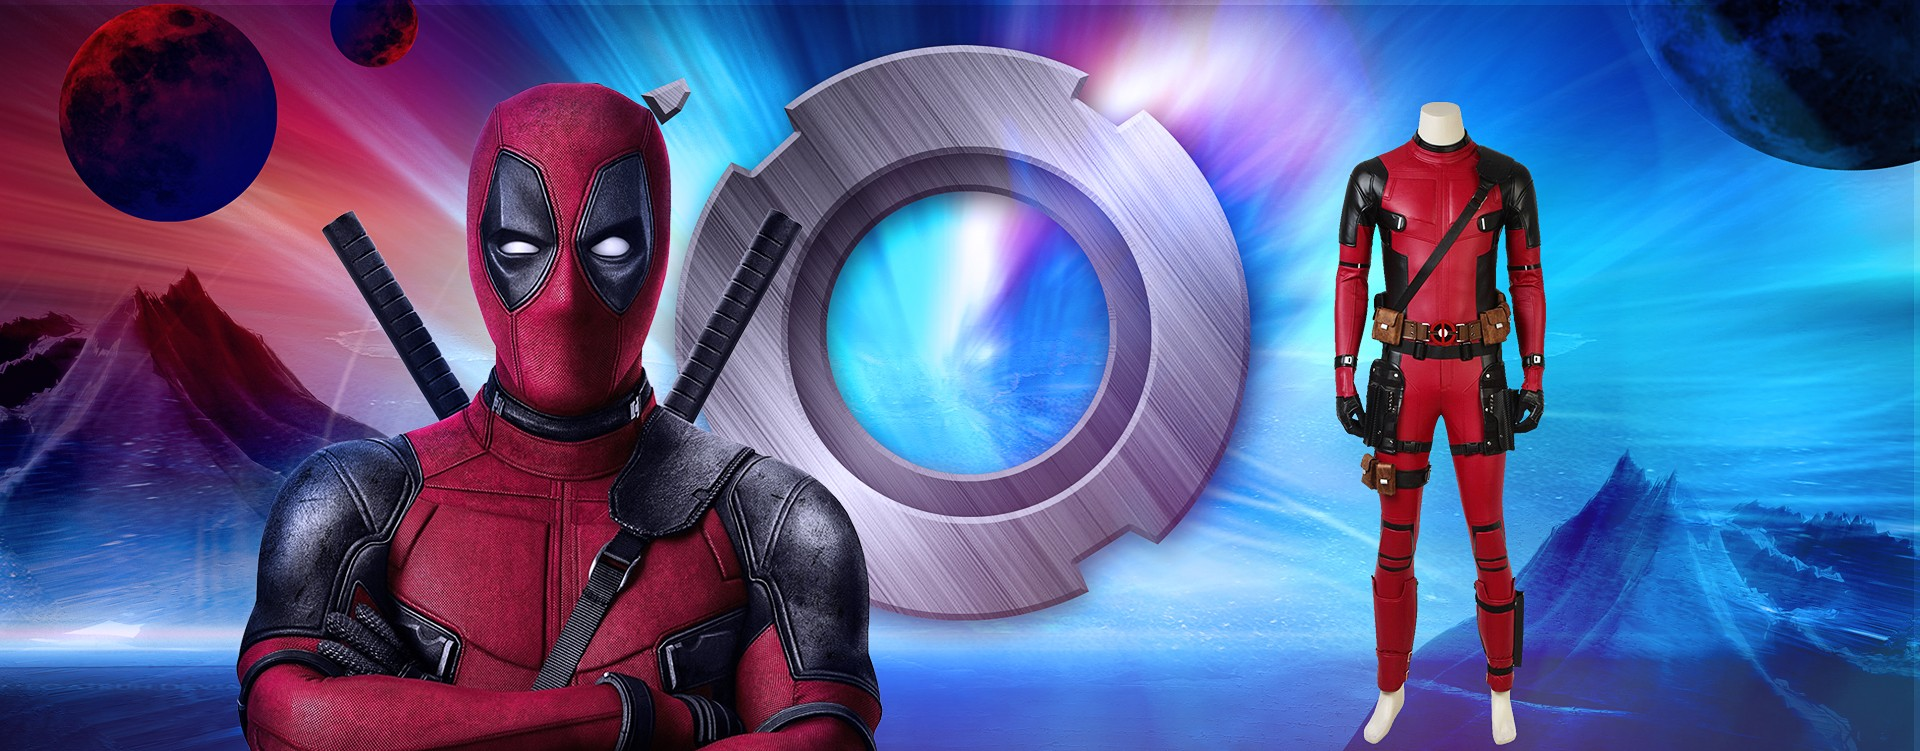 Get ready to be a bad guy, bring home this X-Men Deadpool Wade Cosplay Costume!